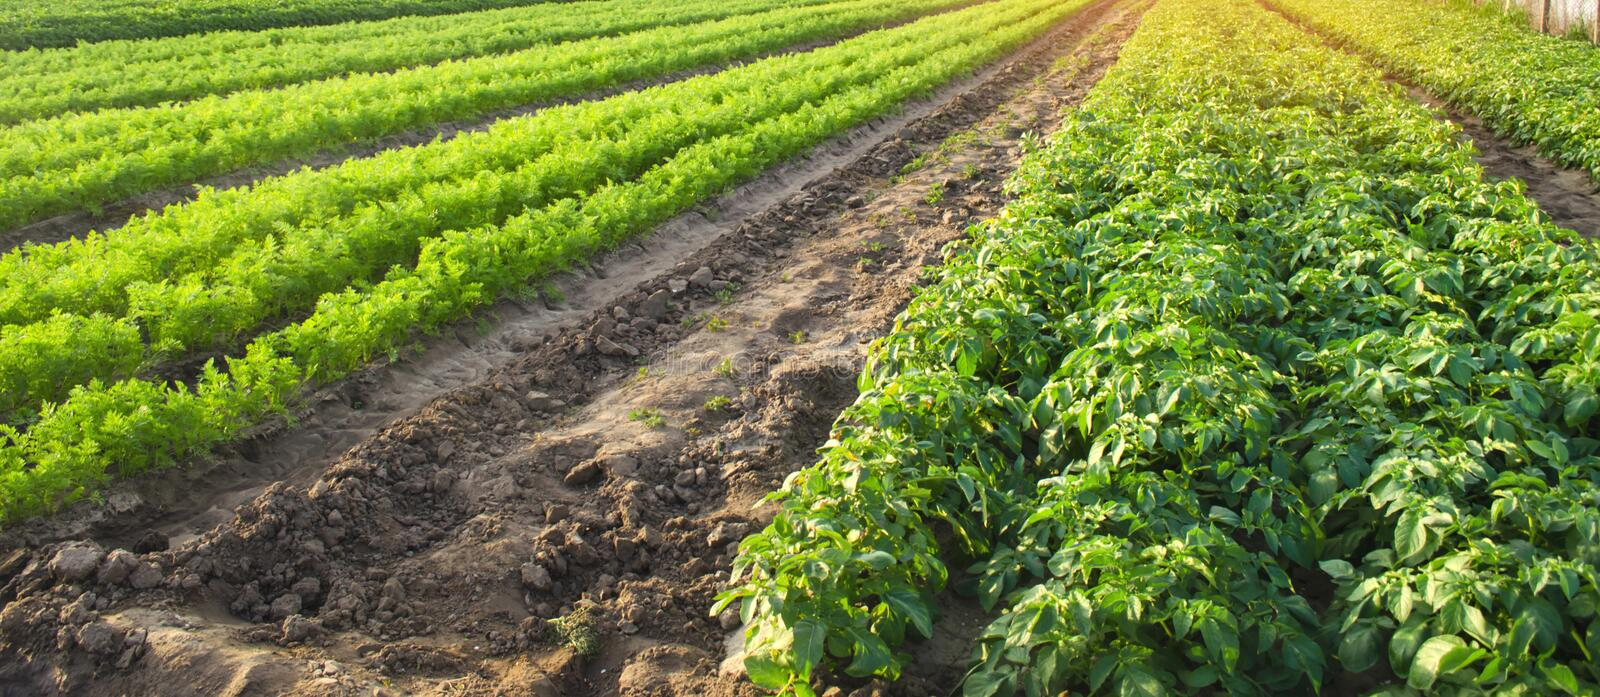 Agricultural landscape with vegetable plantations. Growing organic vegetables in the field. Farm agriculture. Potatoes and carrot royalty free stock image